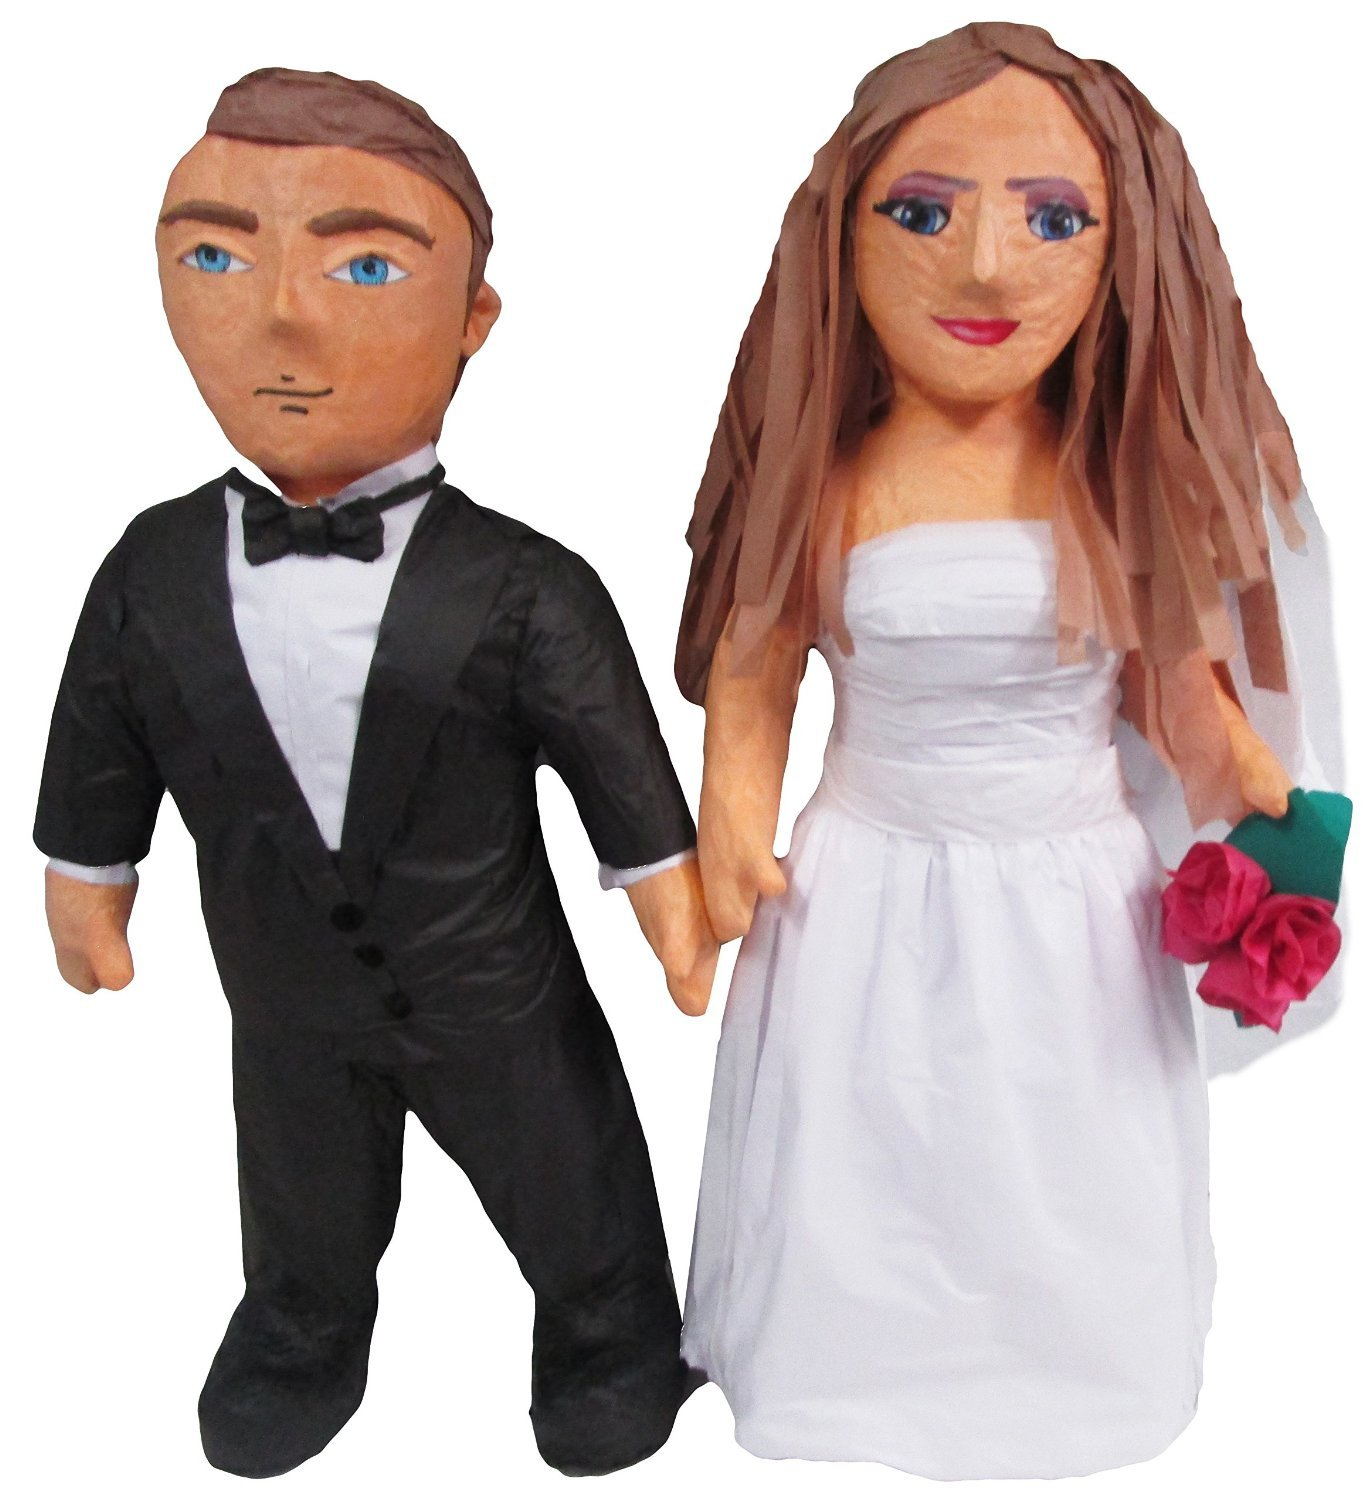 Custom Wedding Couple Bride and Groom Pinata, Photo Prop, Centerpiece Decoration and Party Game (Medium, Standing)